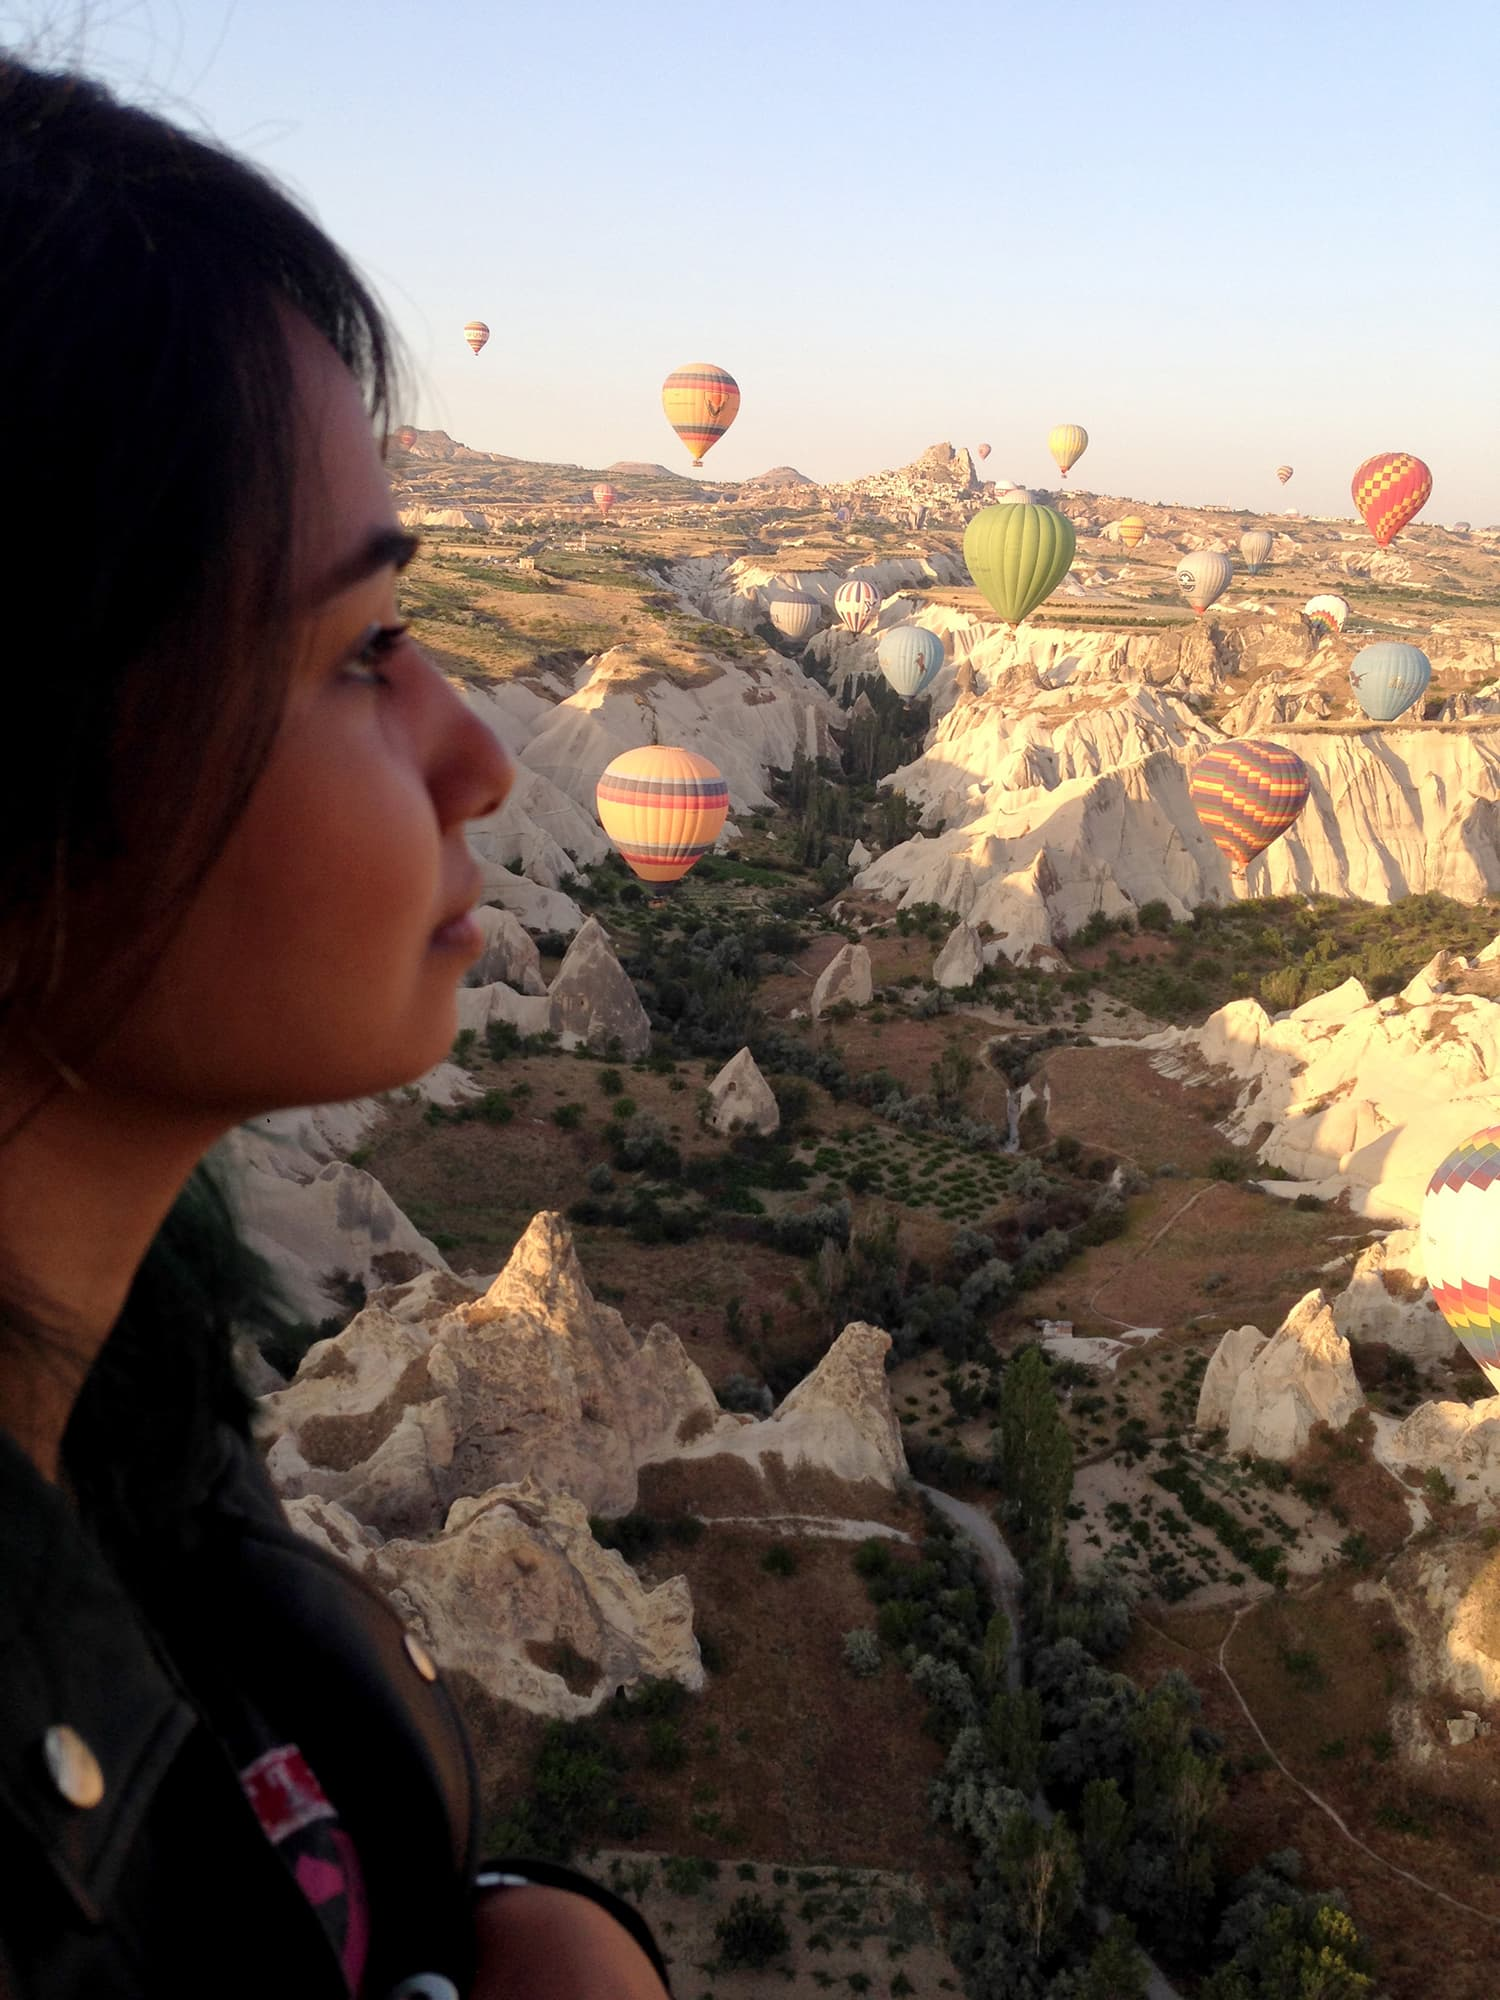 Hot air balloon ride in Cappadocia, Turkey.